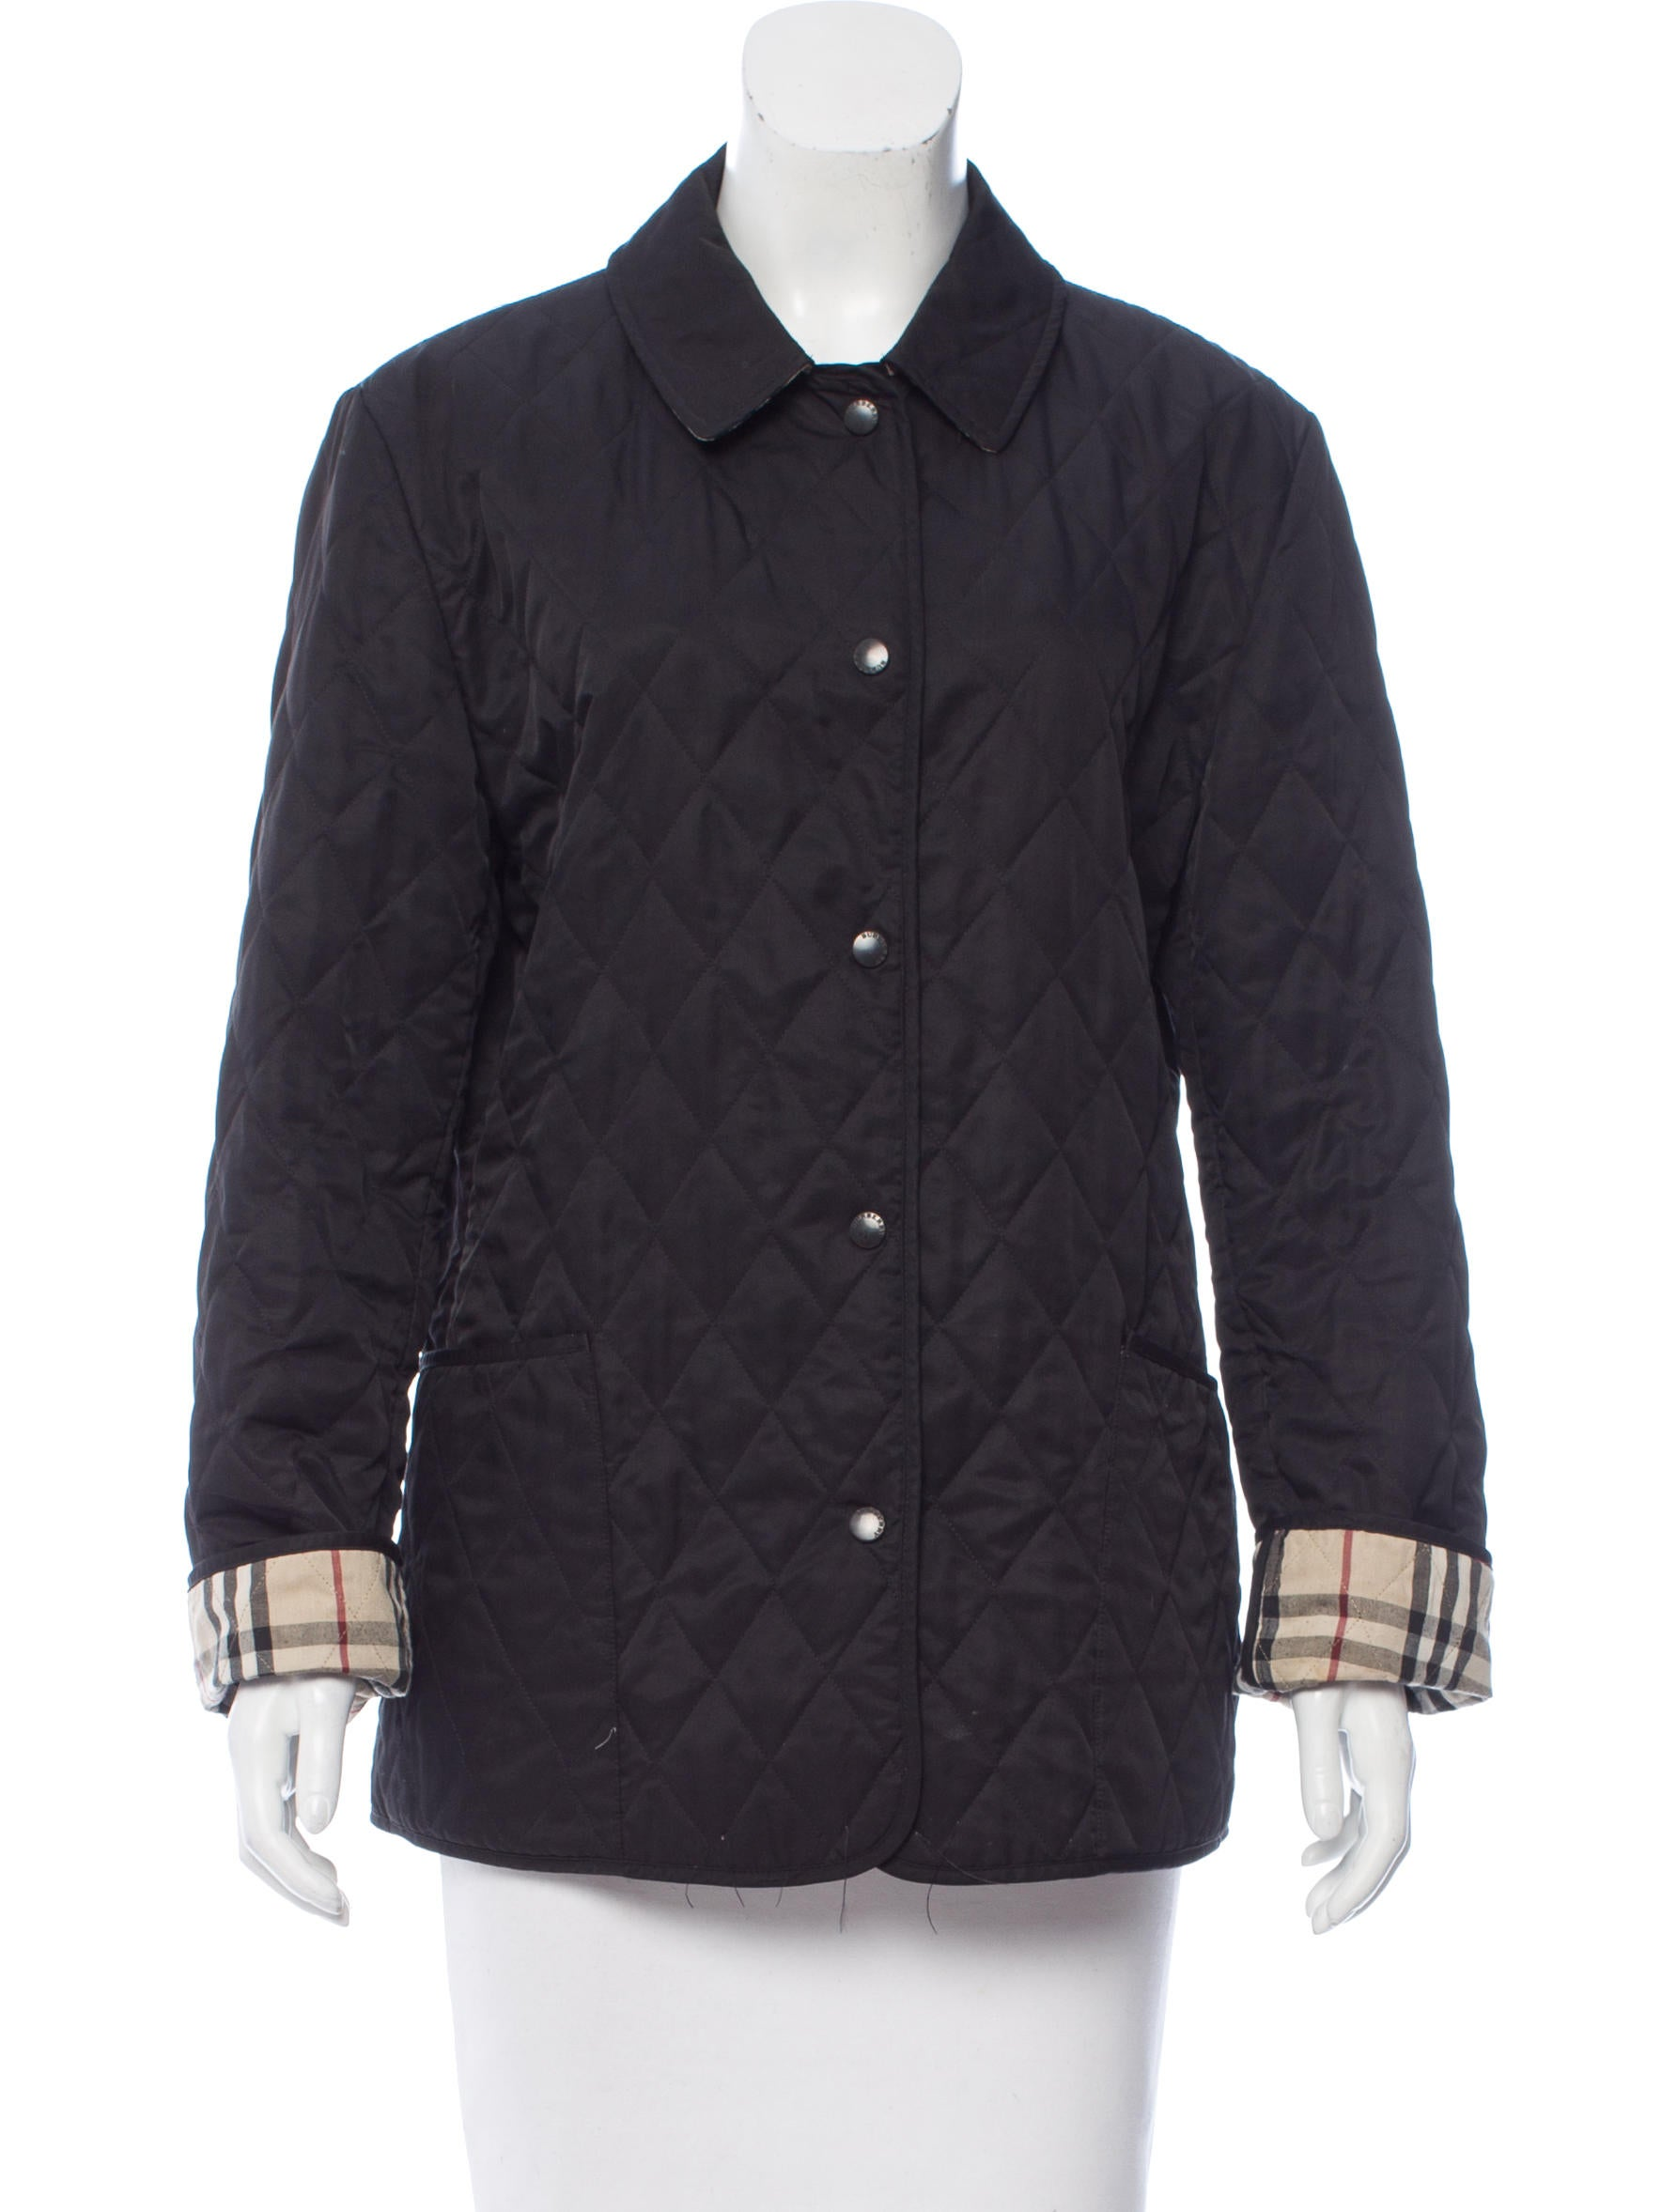 Burberry Constance Quilted Jacket - Clothing - BUR71071 | The RealReal